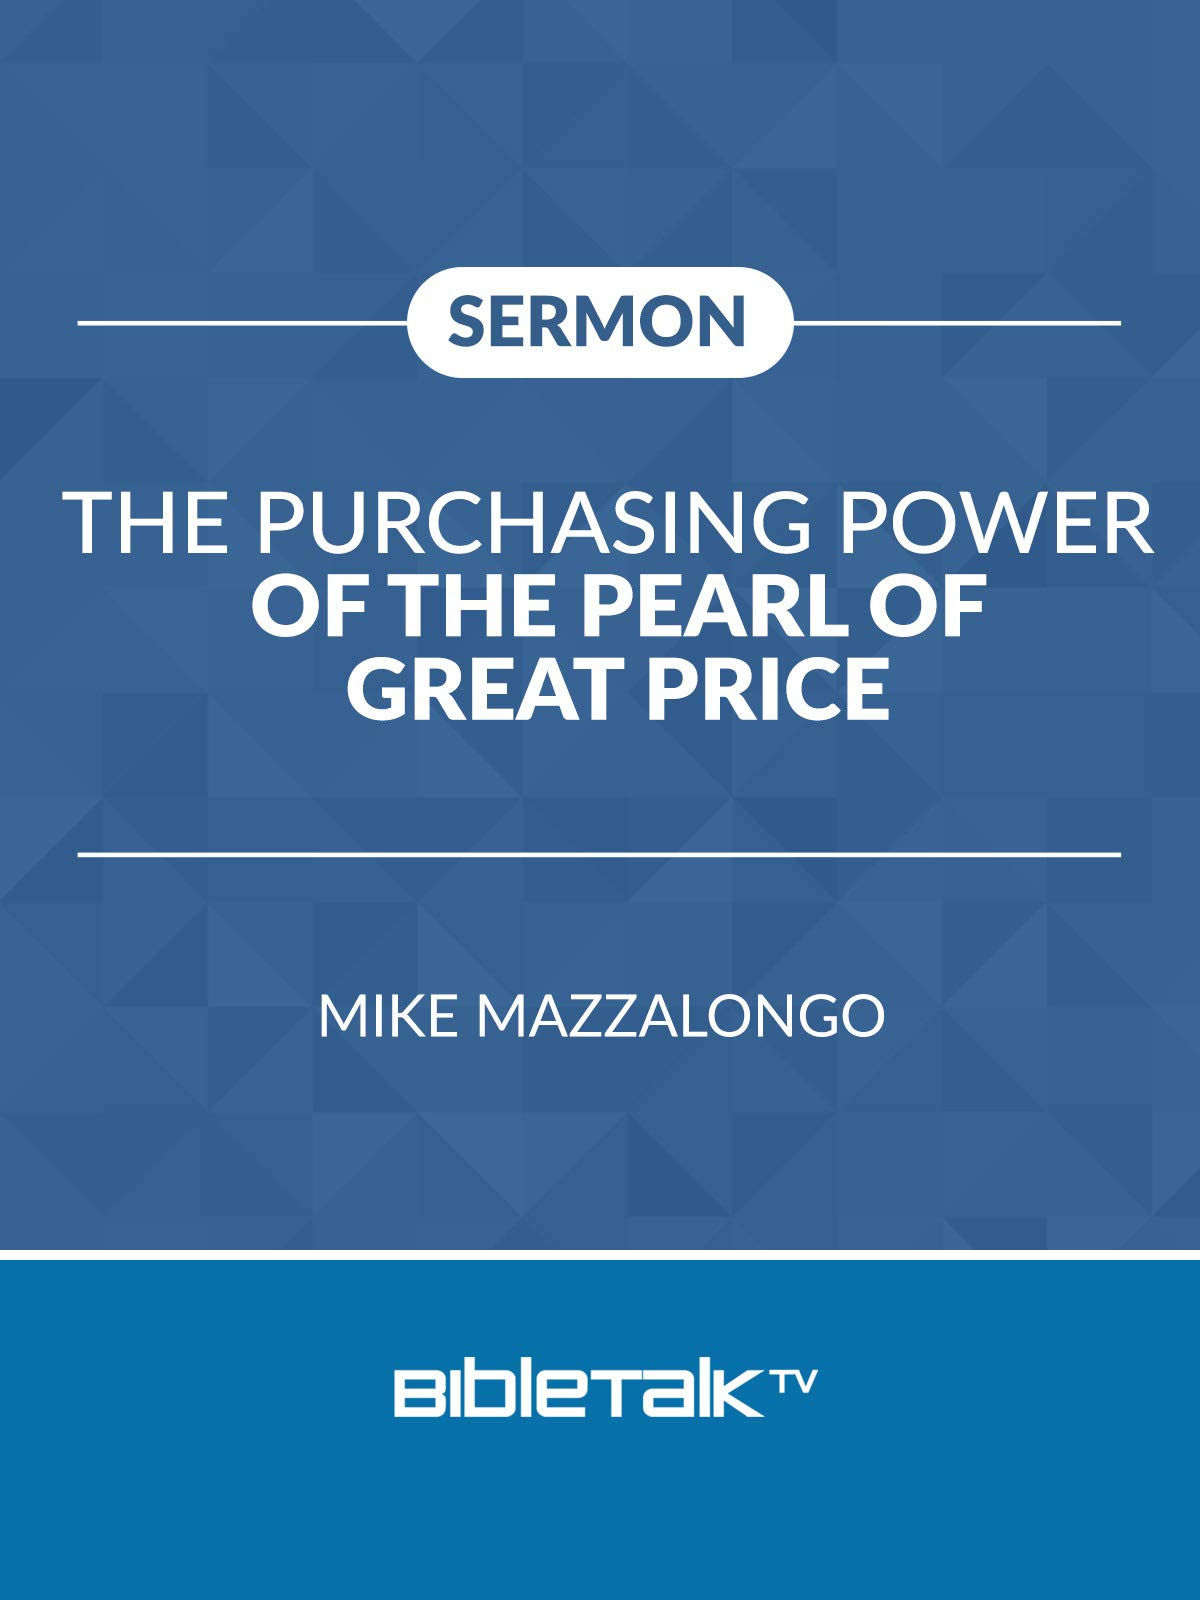 The Purchasing Power of the Pearl of Great Price